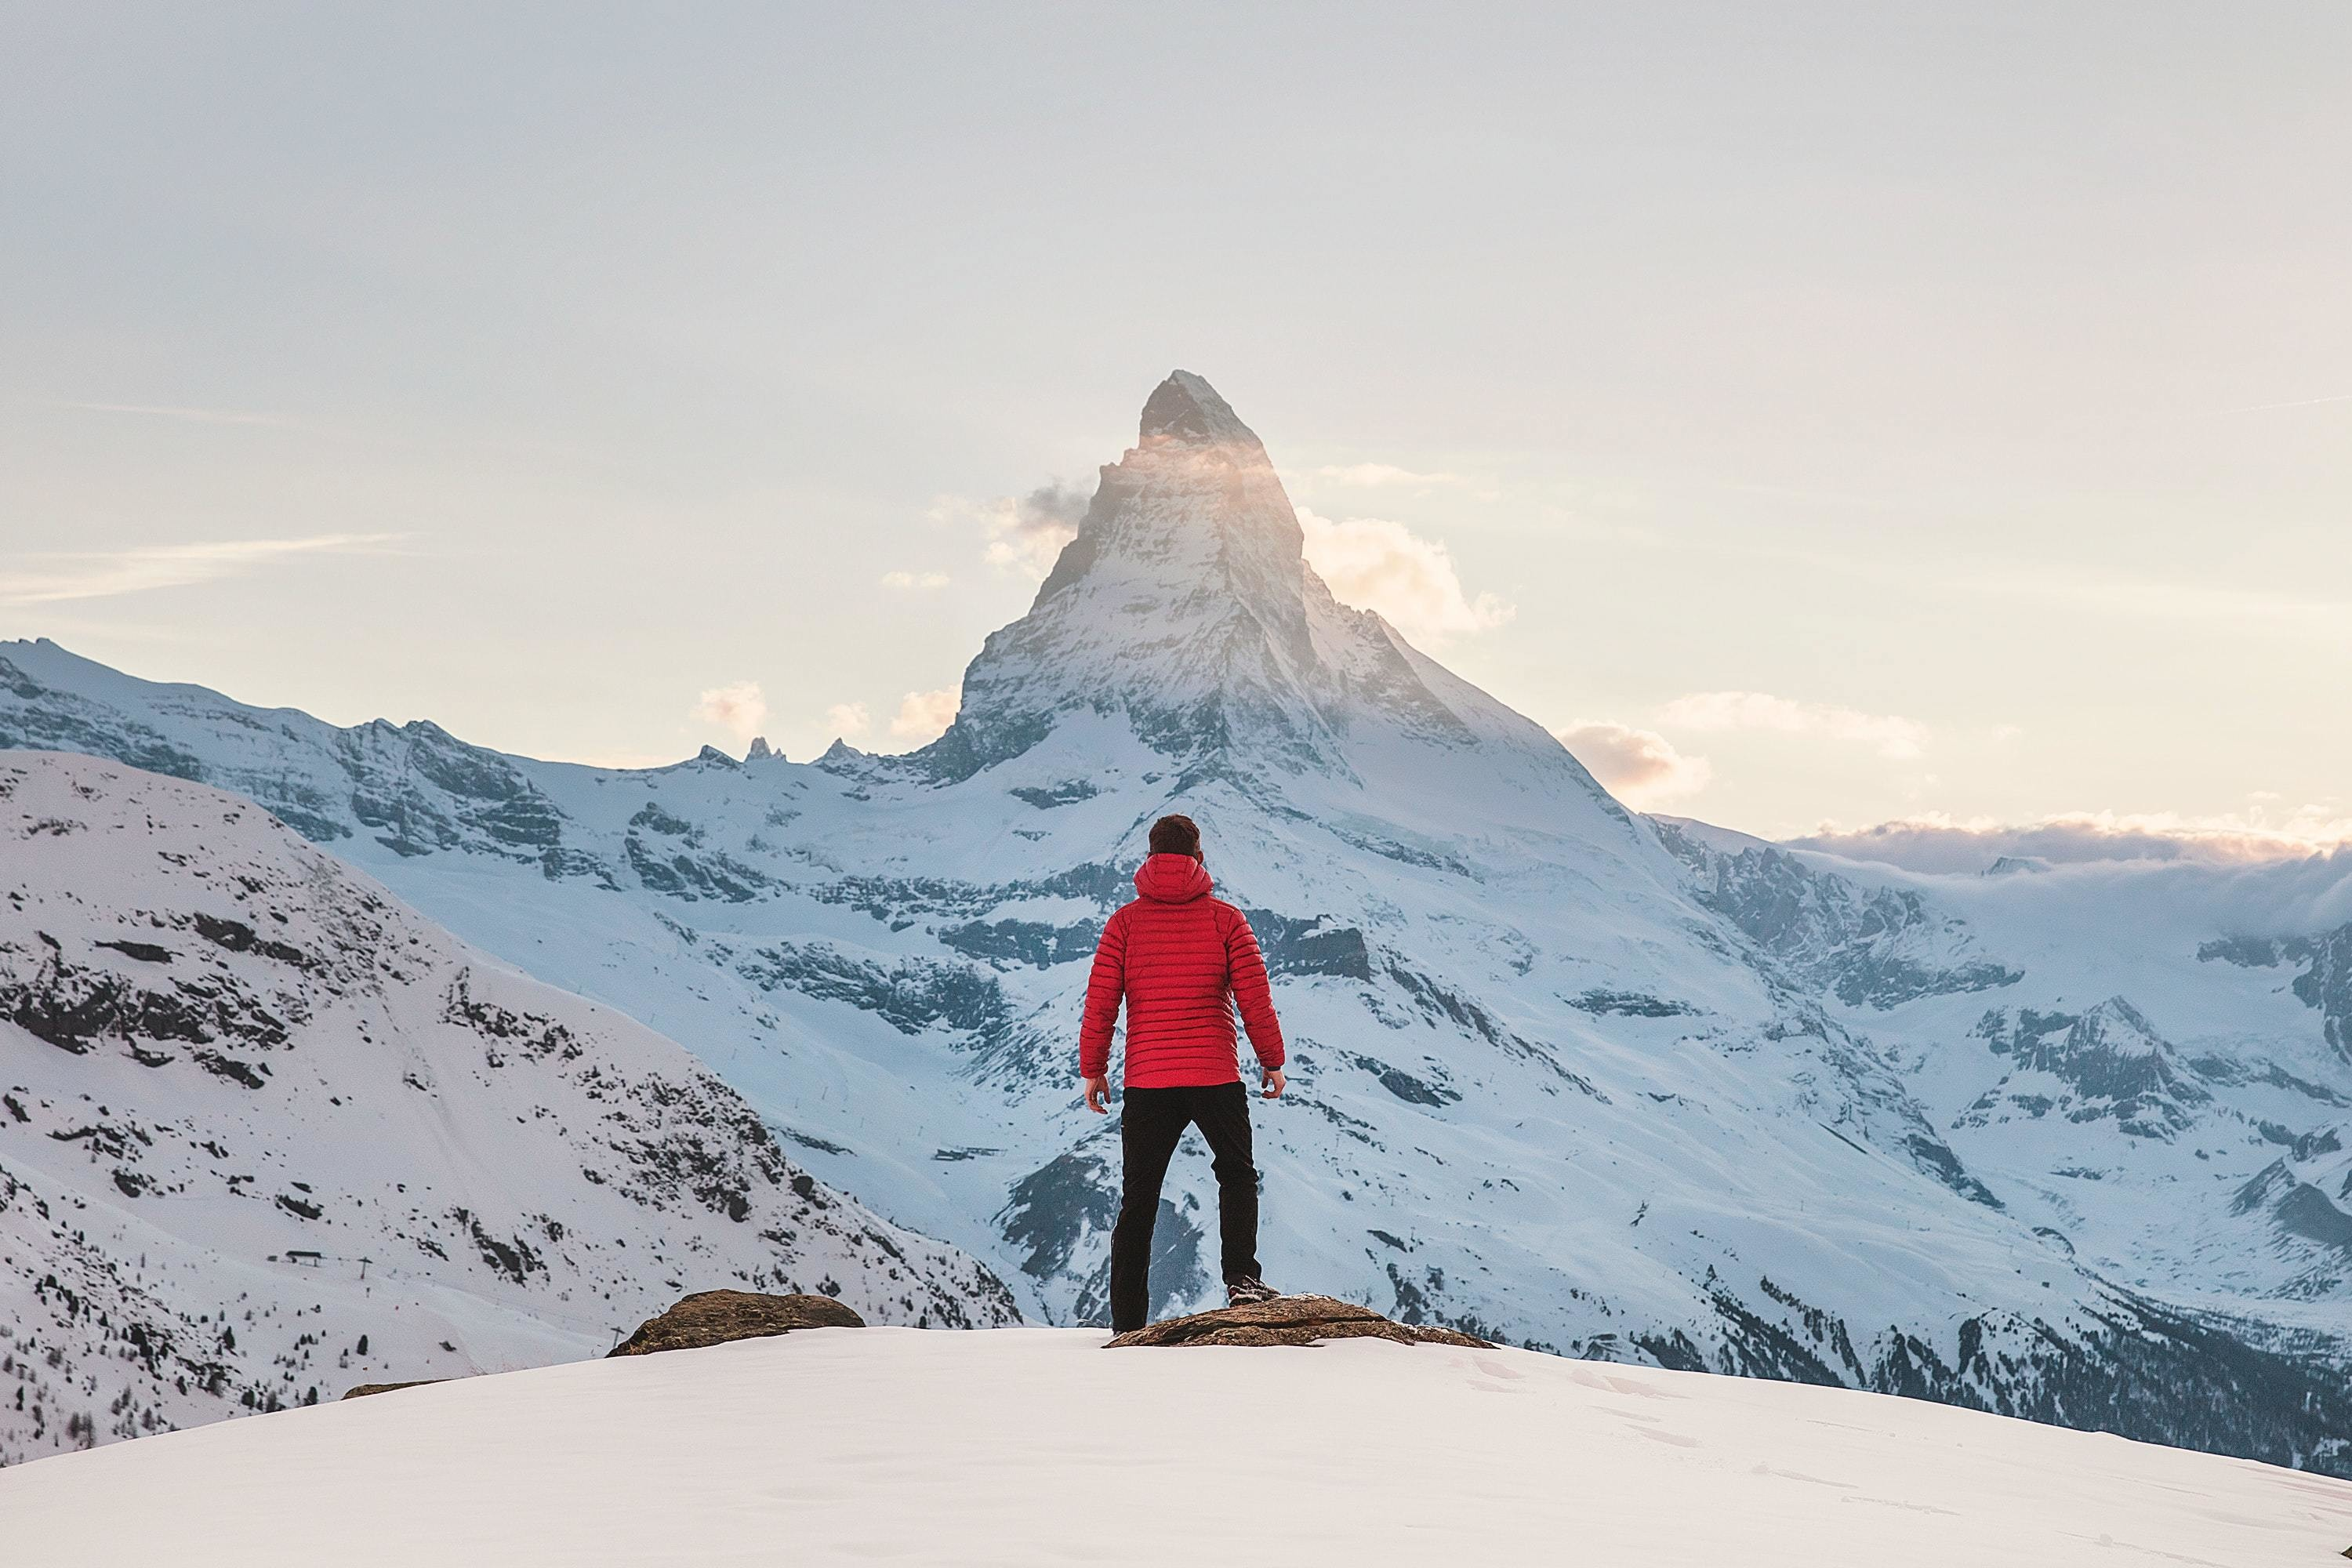 Man standing in red coat looking at the Matterhorn.